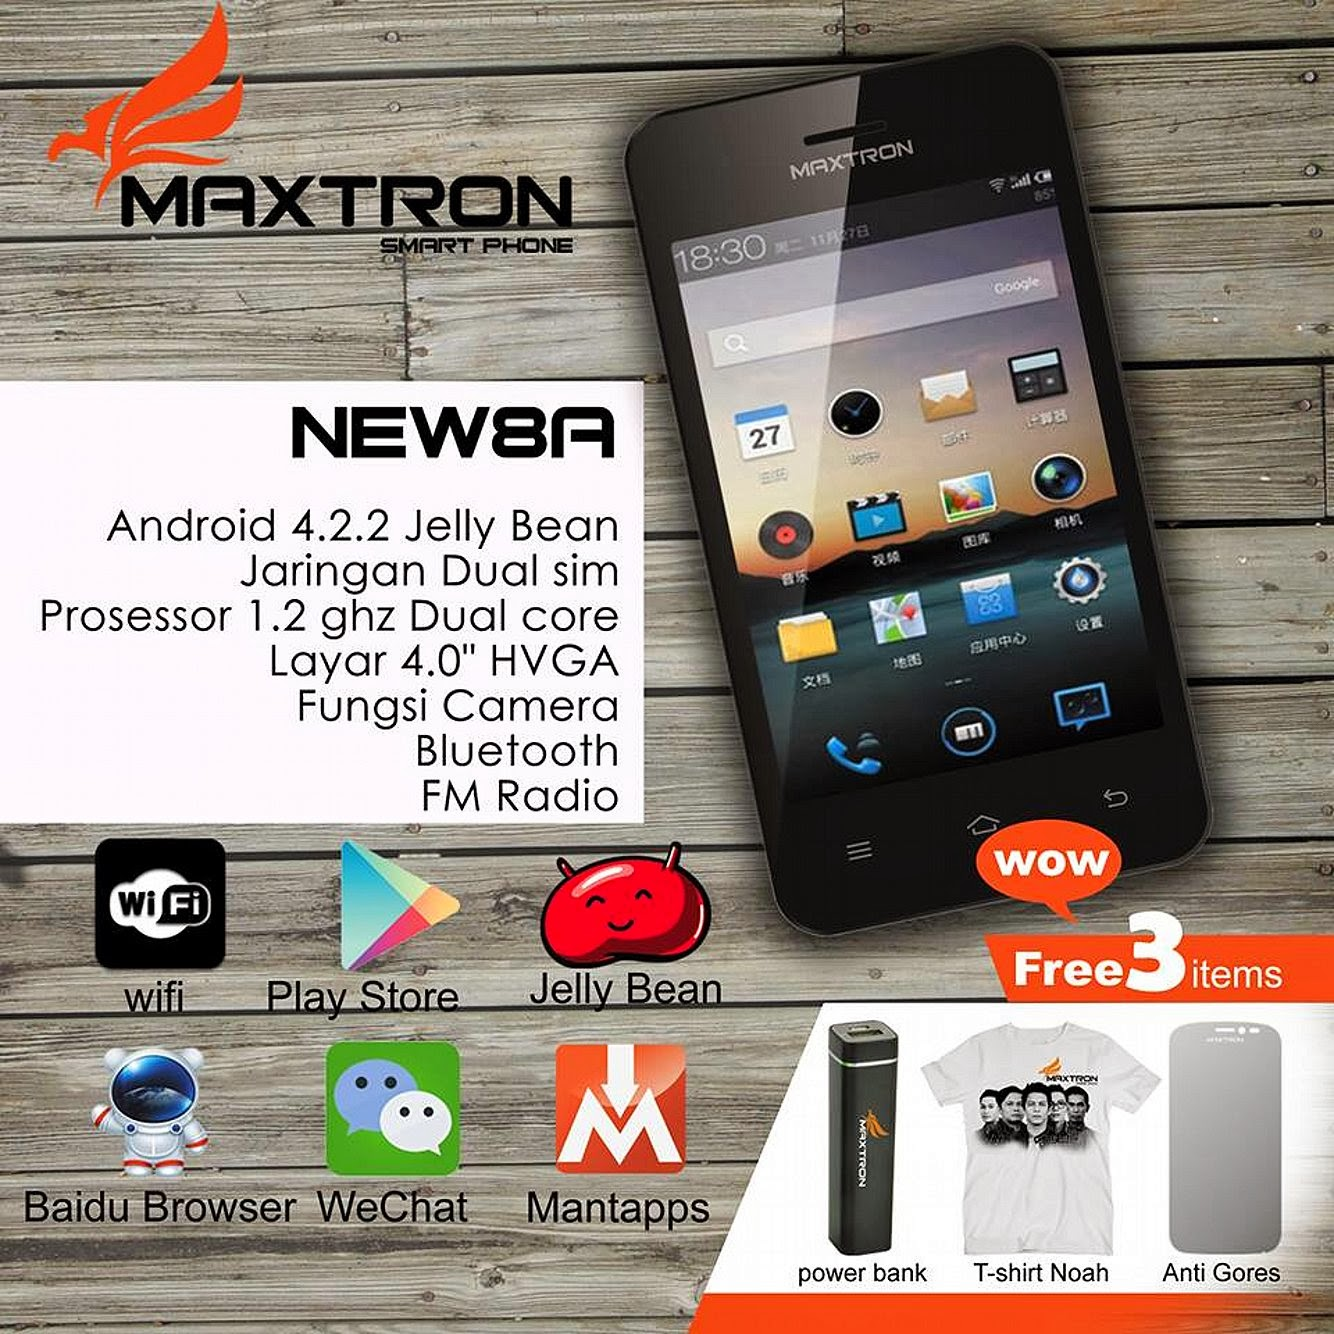 game maxtron new 8a